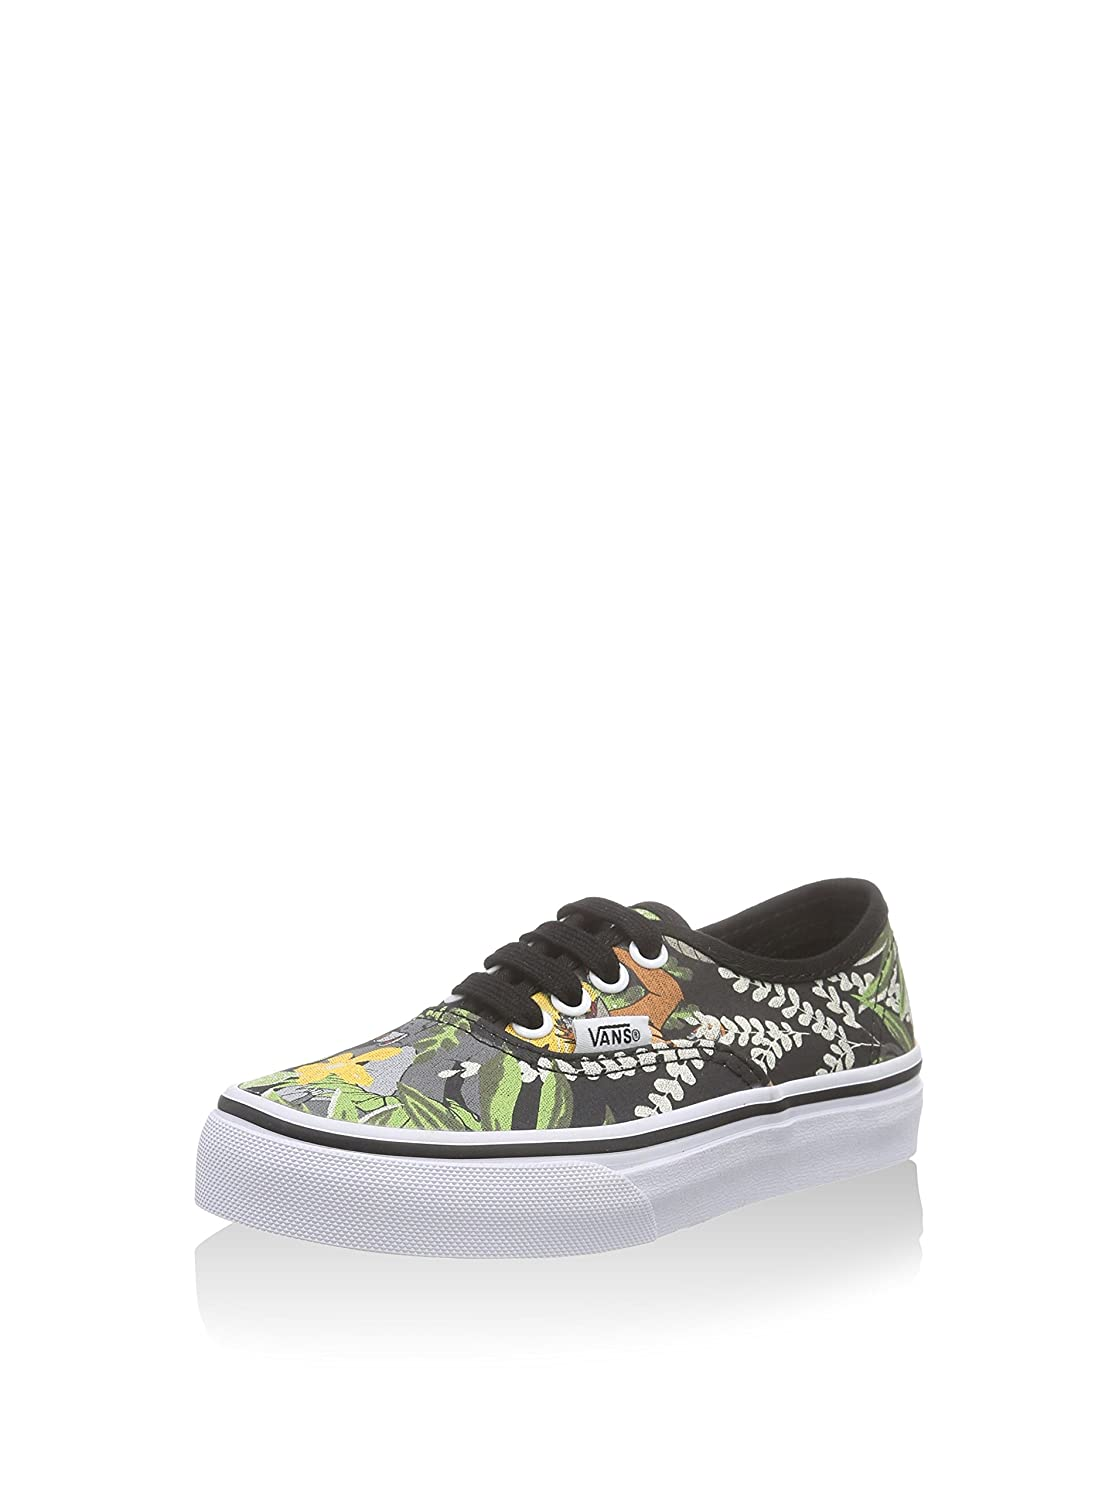 80b7f8afa812b8 Amazon.com  Vans Kids  Authentic-K  Shoes